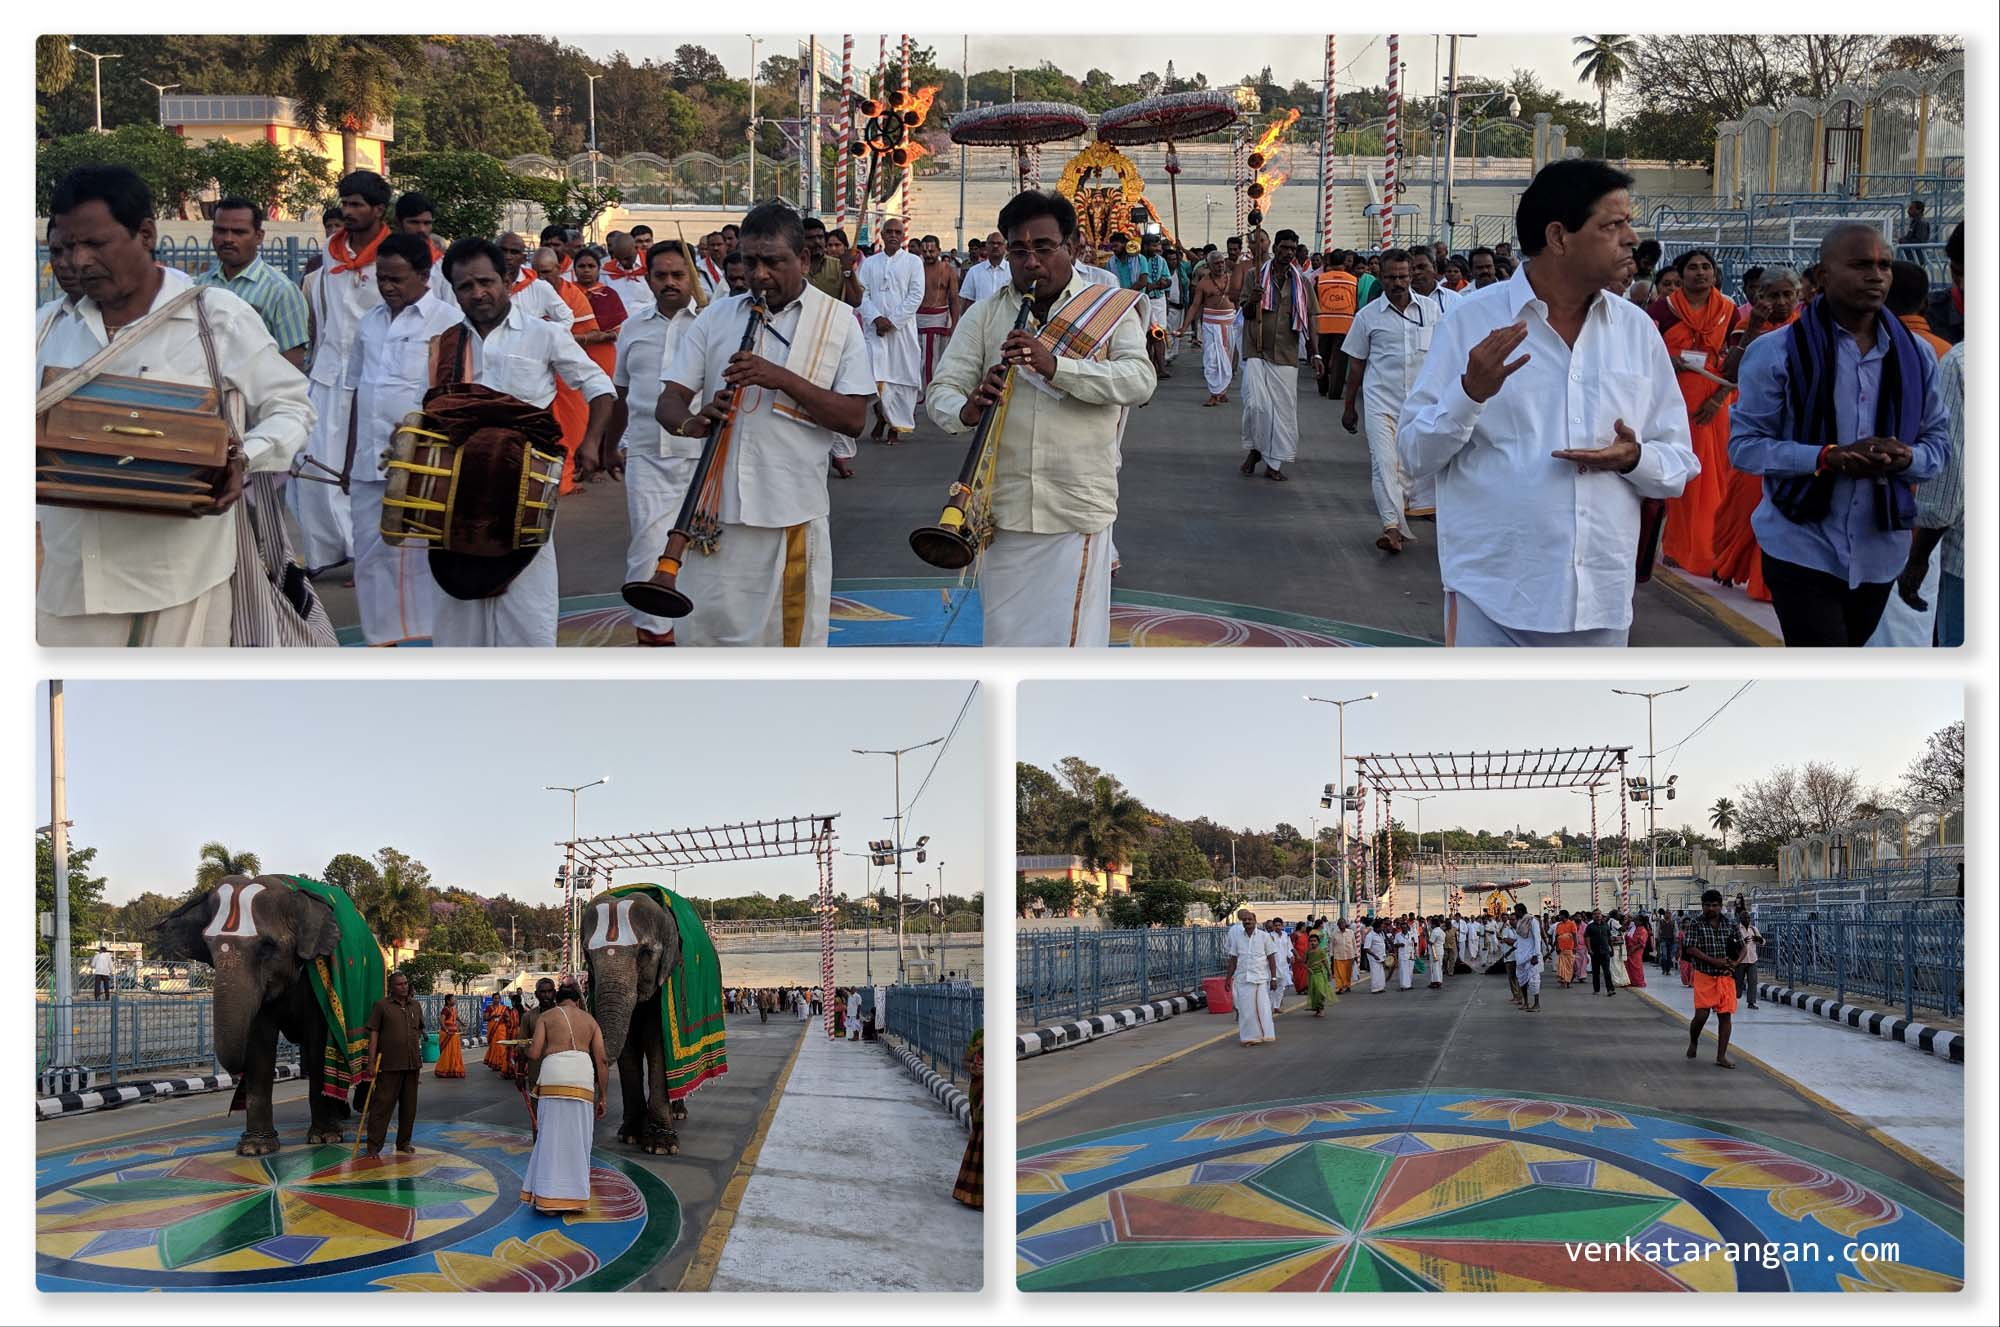 Most of the evenings, there is a procession of Uthsava Murthy of Lord Sri Balaji